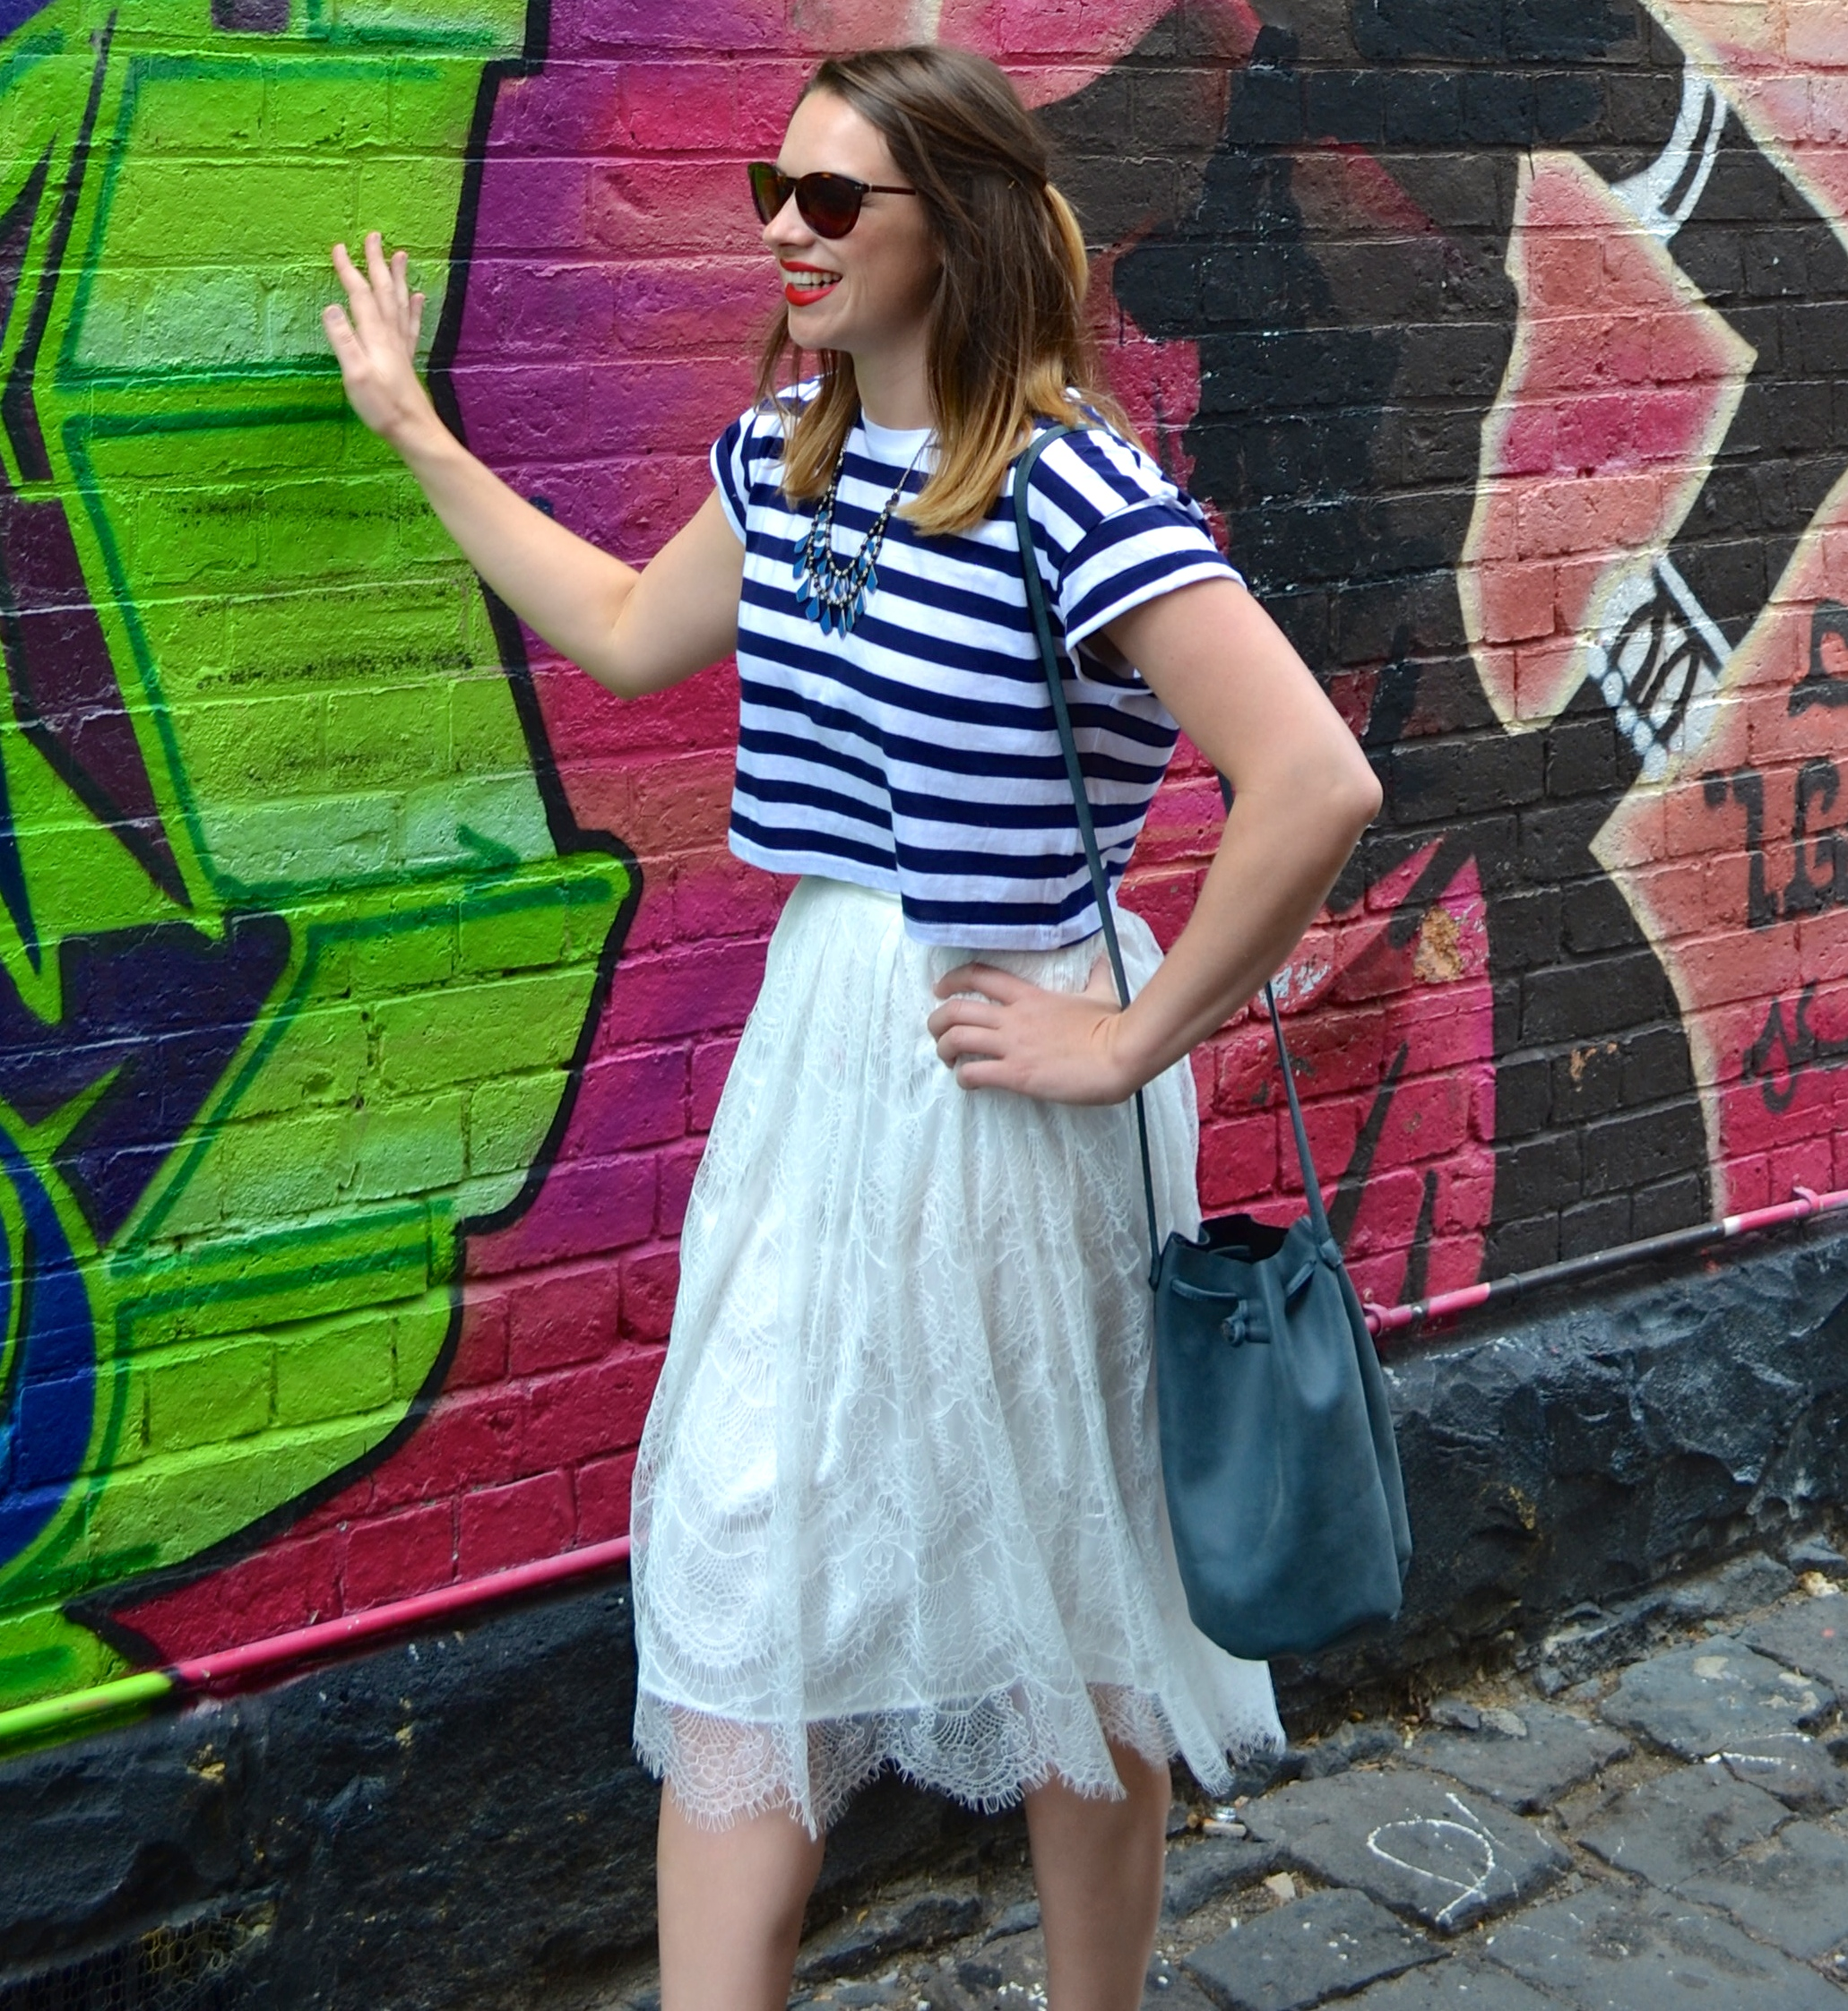 fitzroy-graffiti-lace-midi-skirt-handm-striped-top